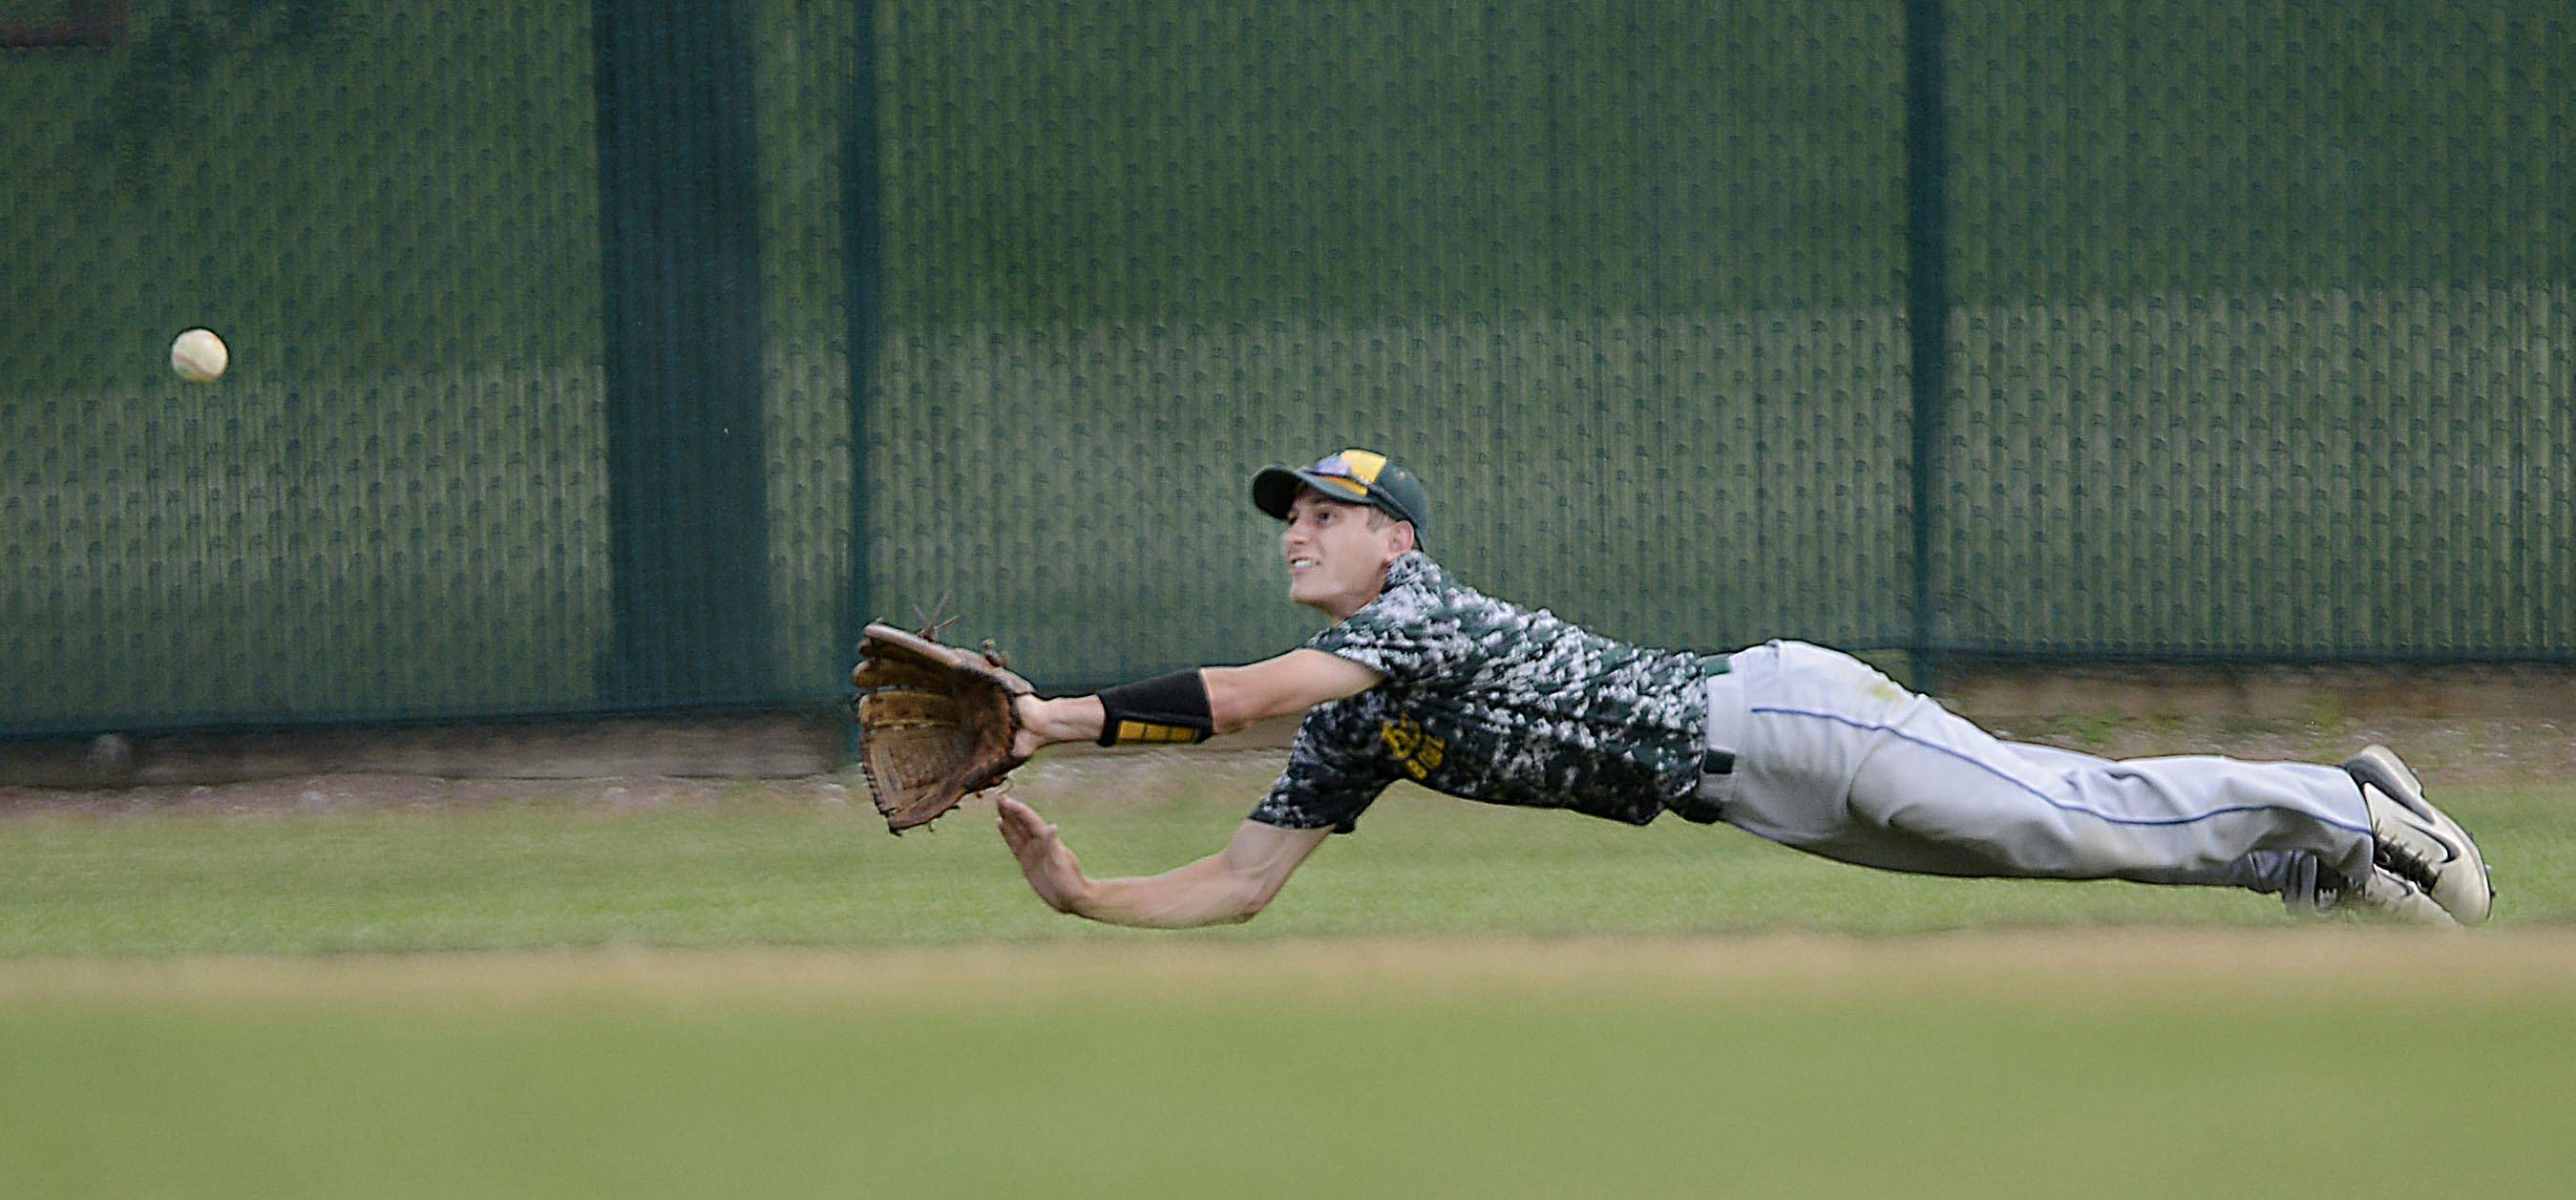 Crystal Lake's Michael Avella dives in left field for a ball hit by Batavia's Michael Fossali in the championship game of the St. Charles East regional. The ball got past Avella for a double.